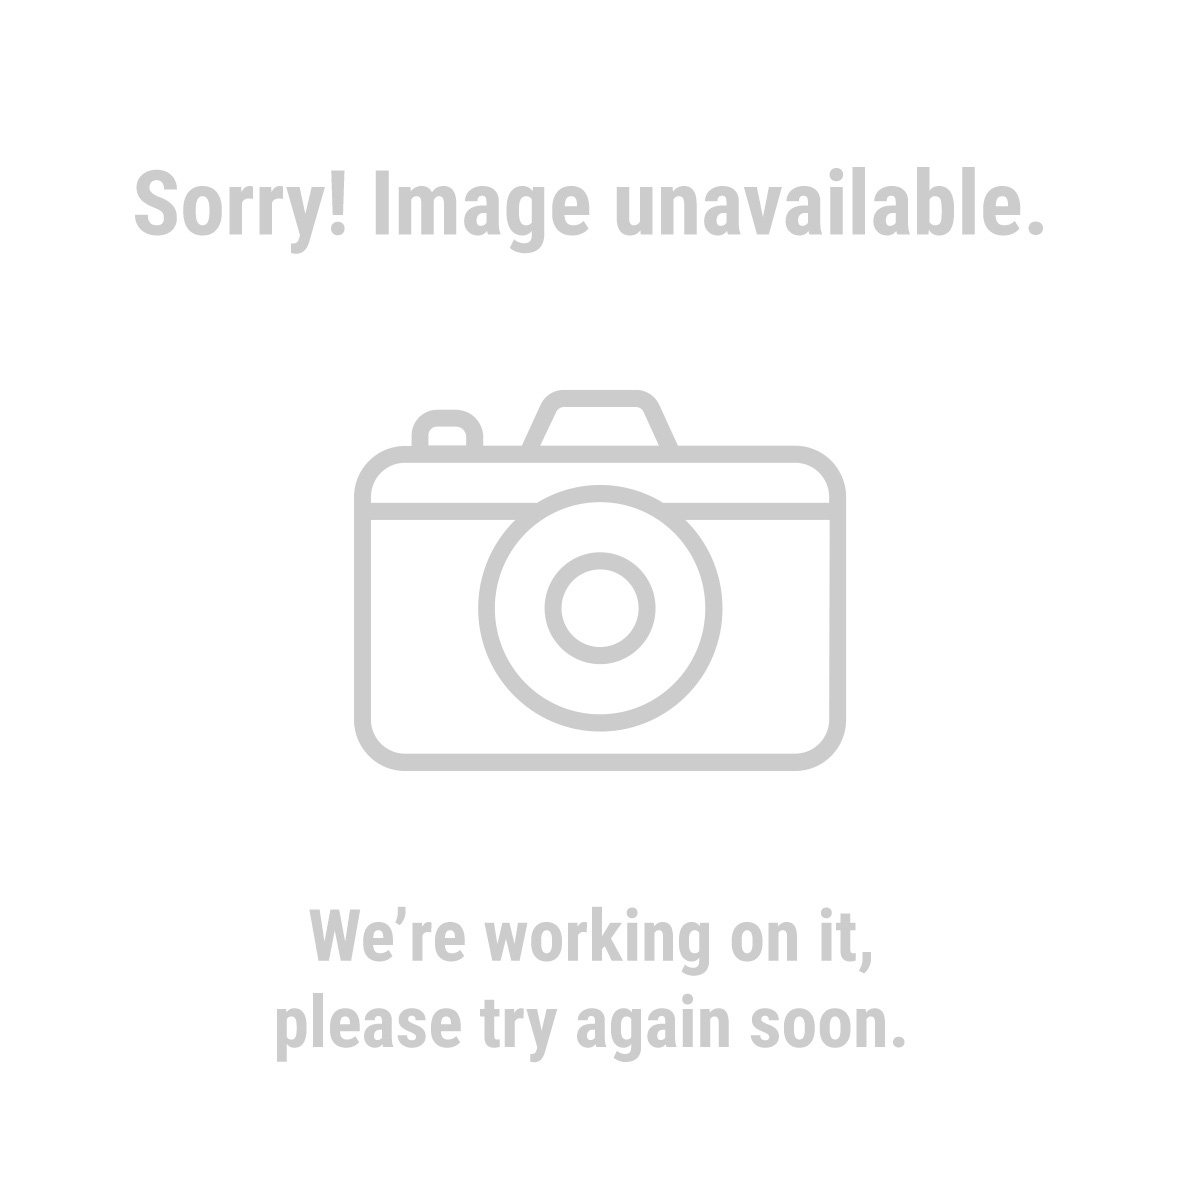 Central-Machinery 39955 12 Speed Floor Production Drill Press